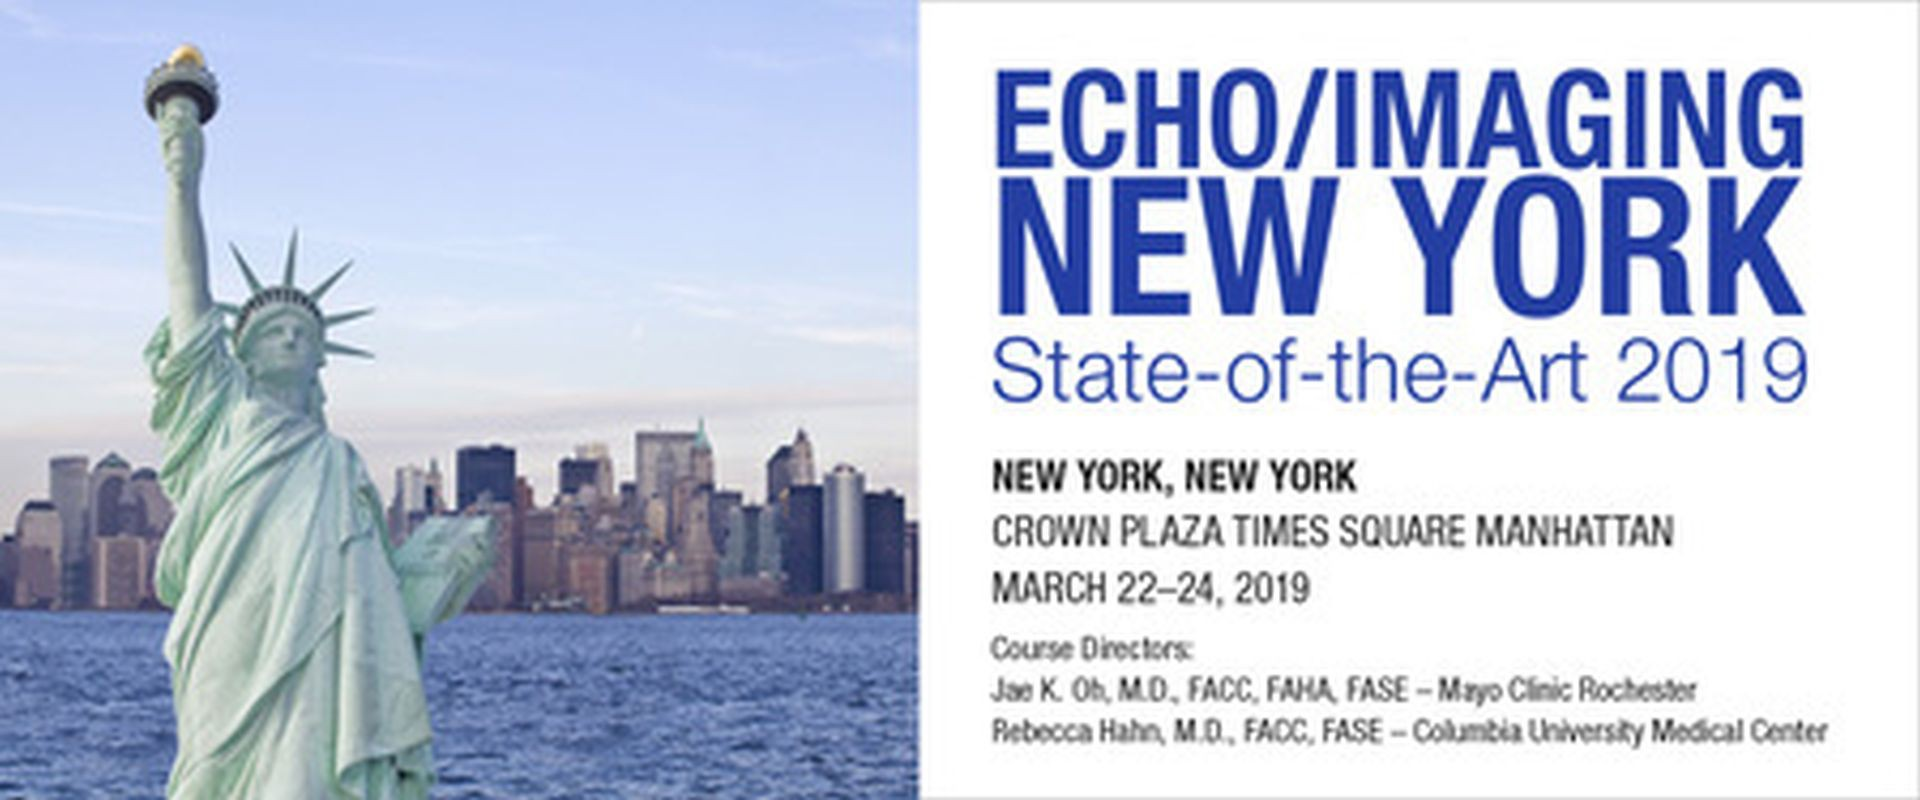 22 Mar 2019: Echo/Imaging New York: State-of-the-Art 2019 - The Echo